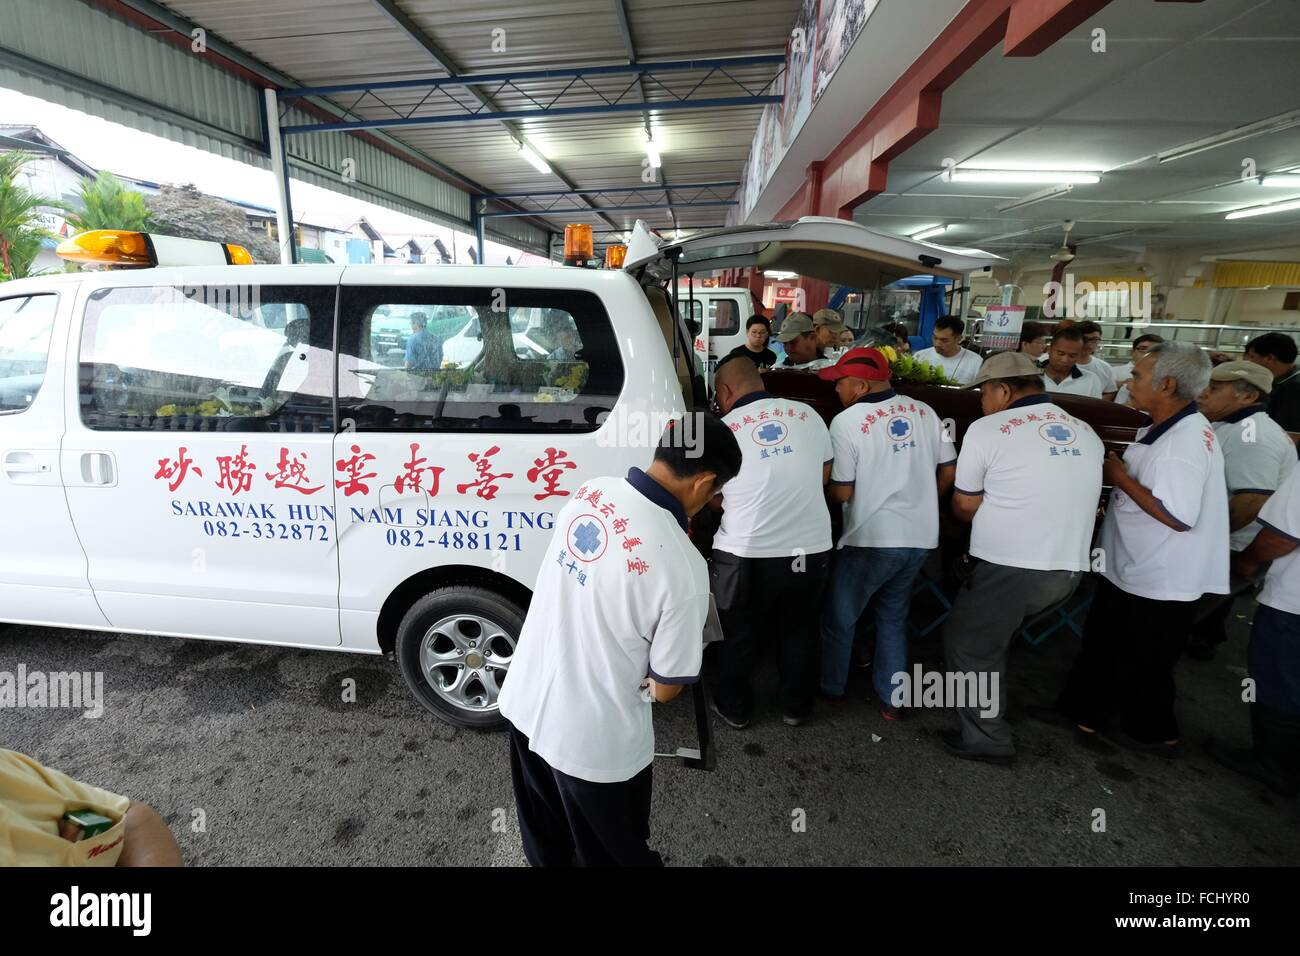 Sending off for burial. Sarawakian chinese funeral ceremony. Malaysia Stock Photo